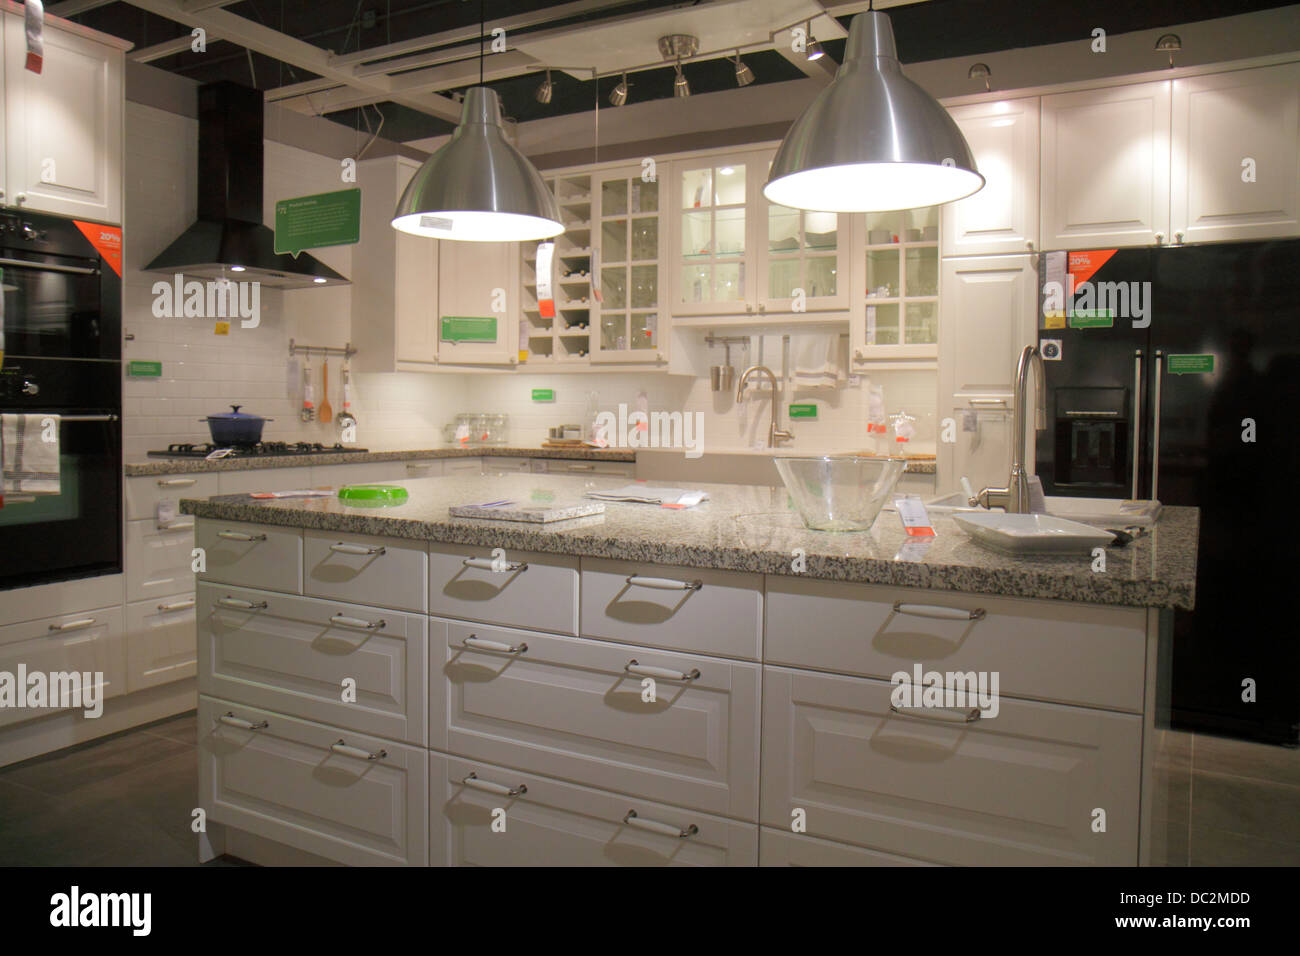 kitchen display cabinets for sale florida fort ft lauderdale ikea home furnishings 8046